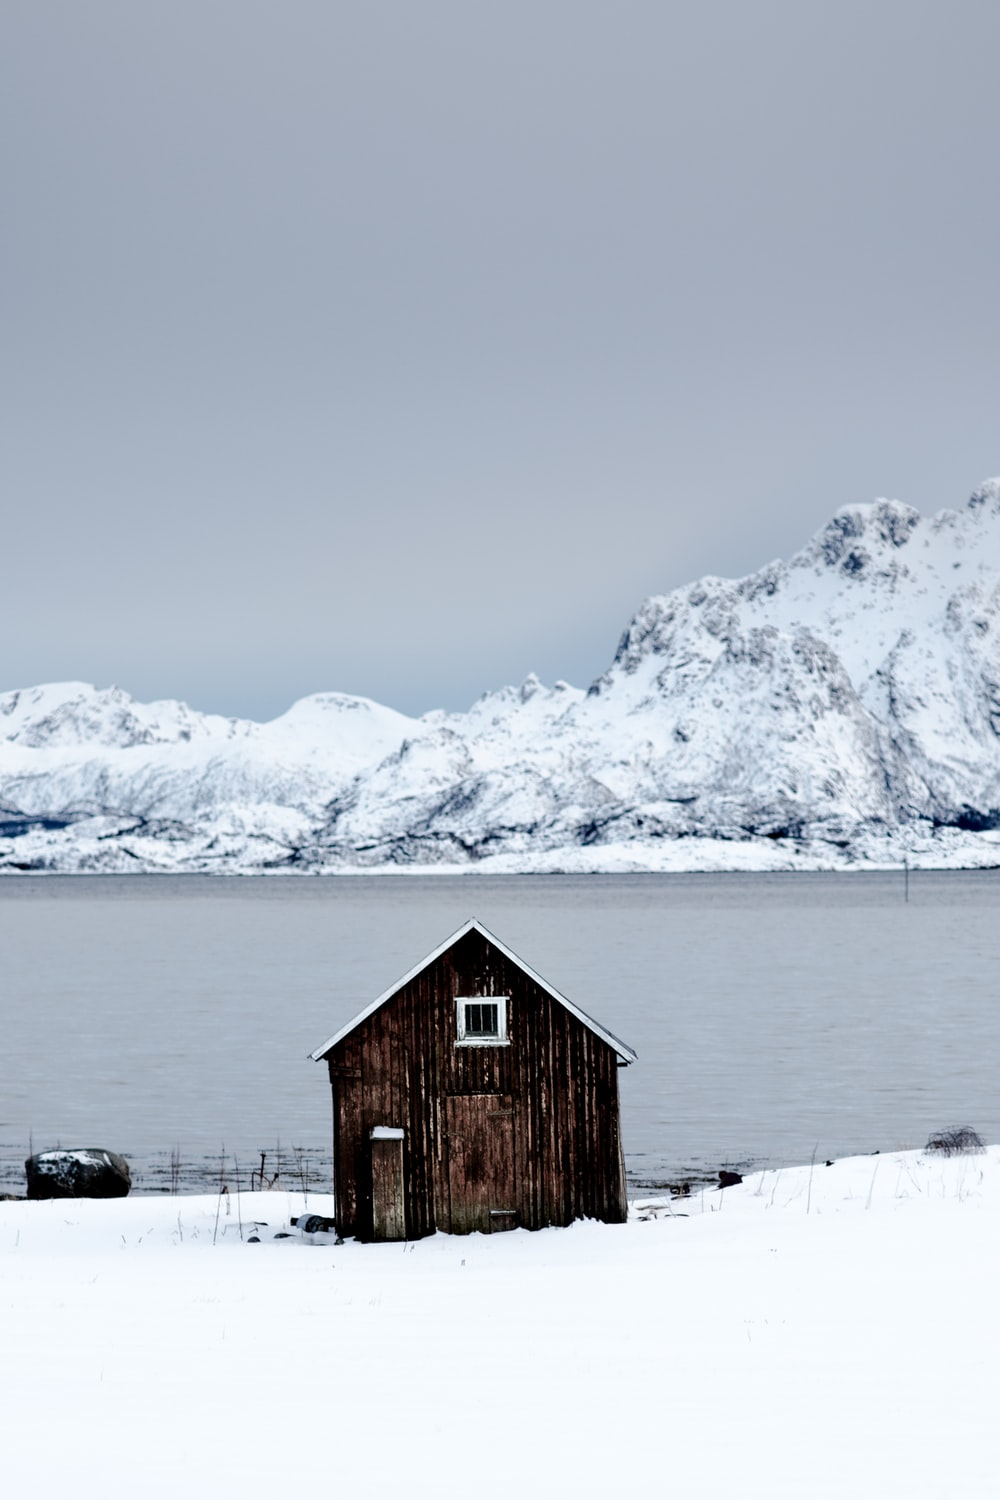 brown wooden shed near lake surrounded by snow